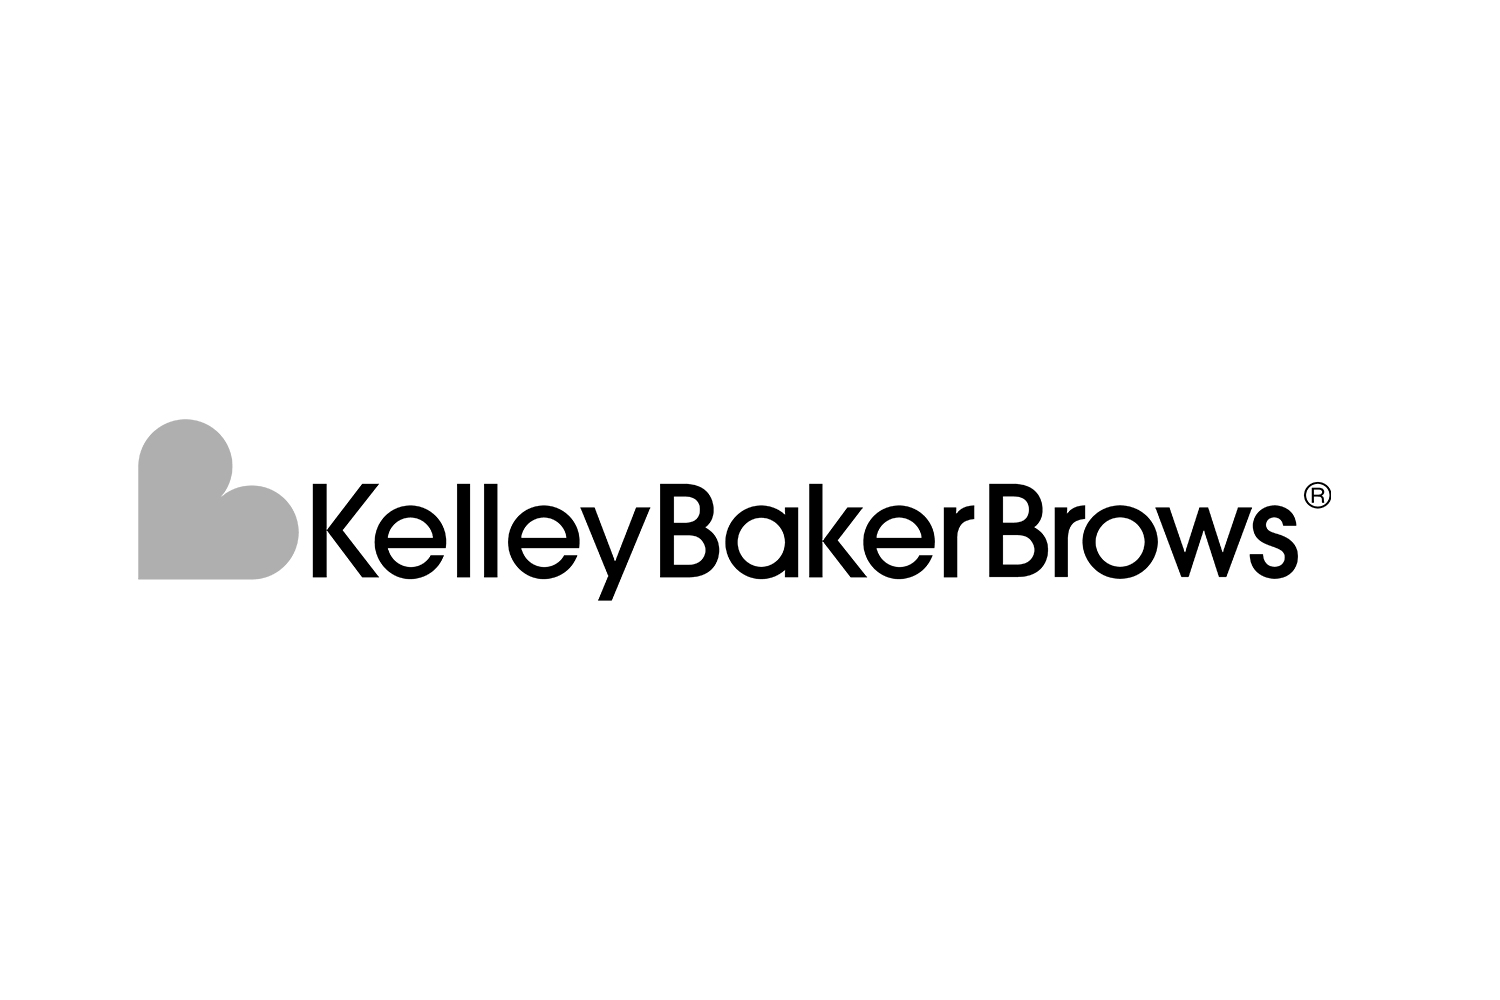 kelley-baker-brows.jpg